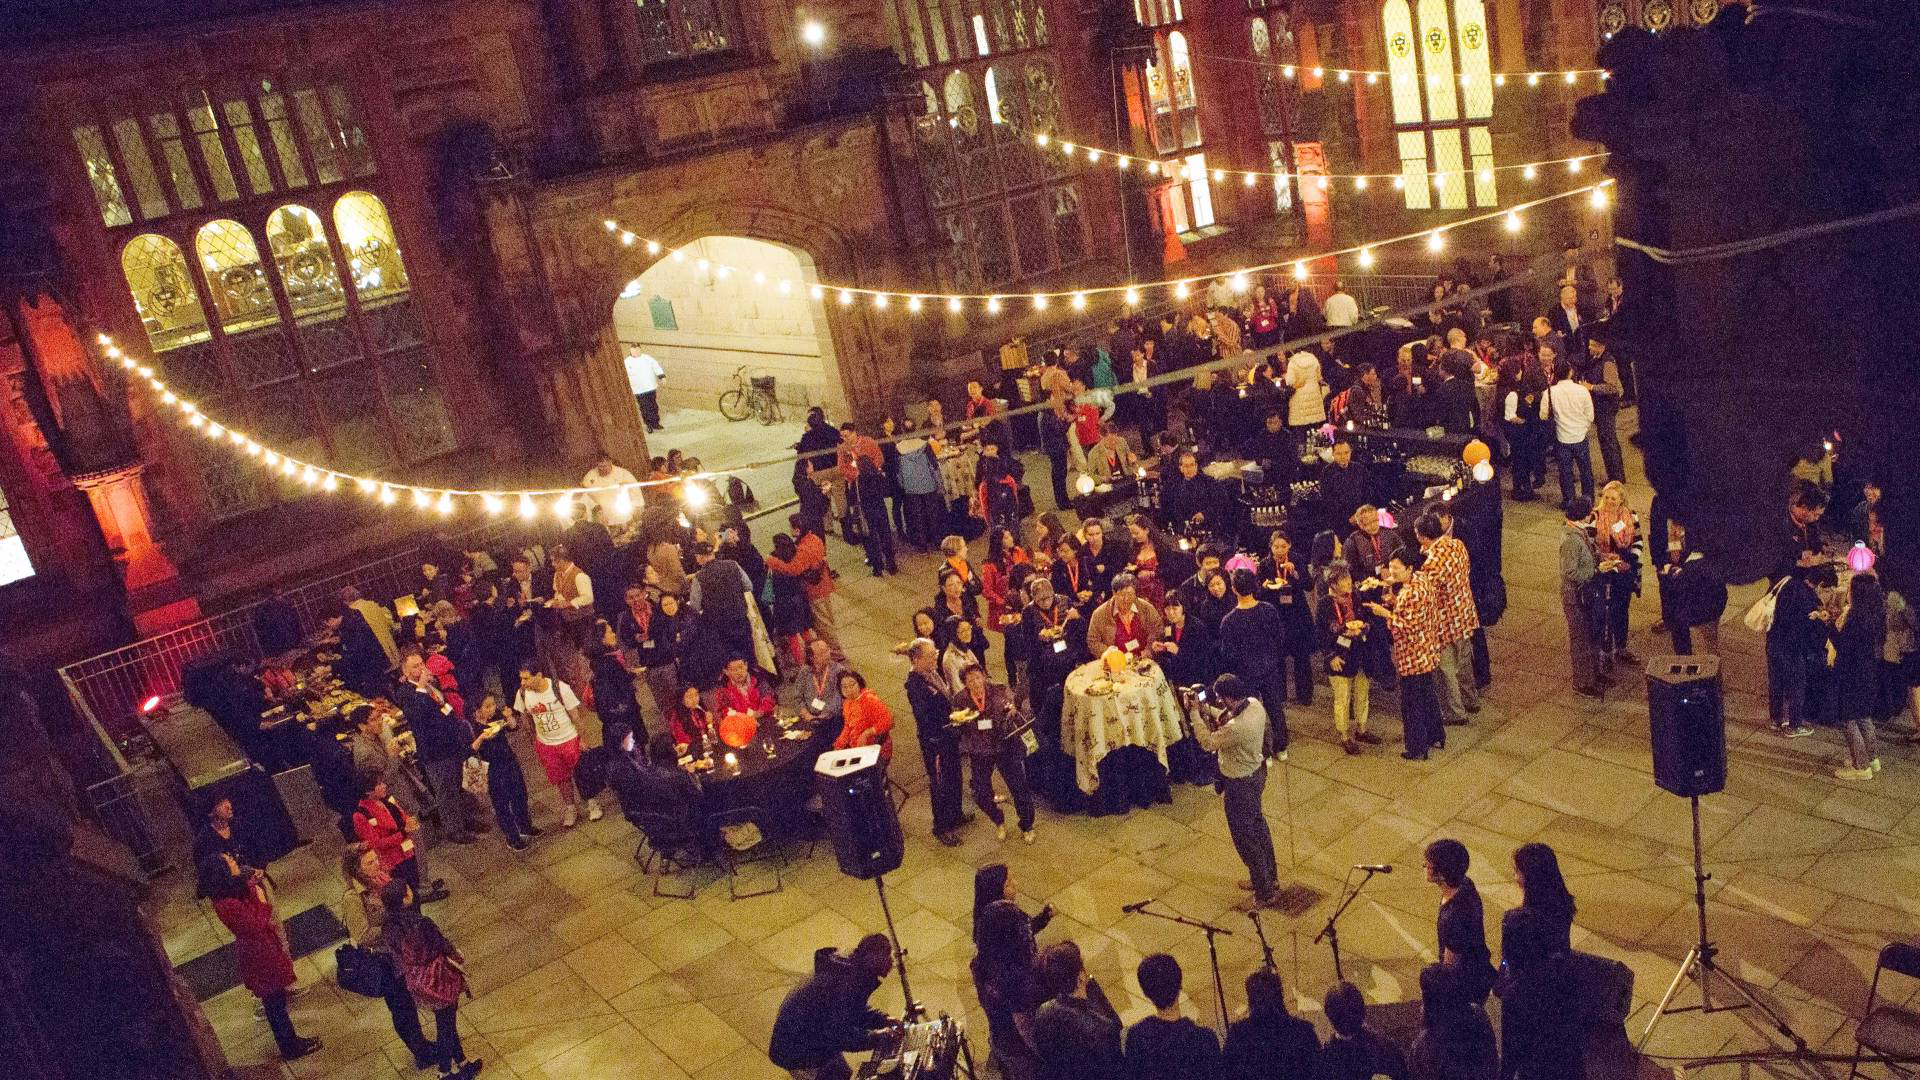 alumni gathered in courtyard at night